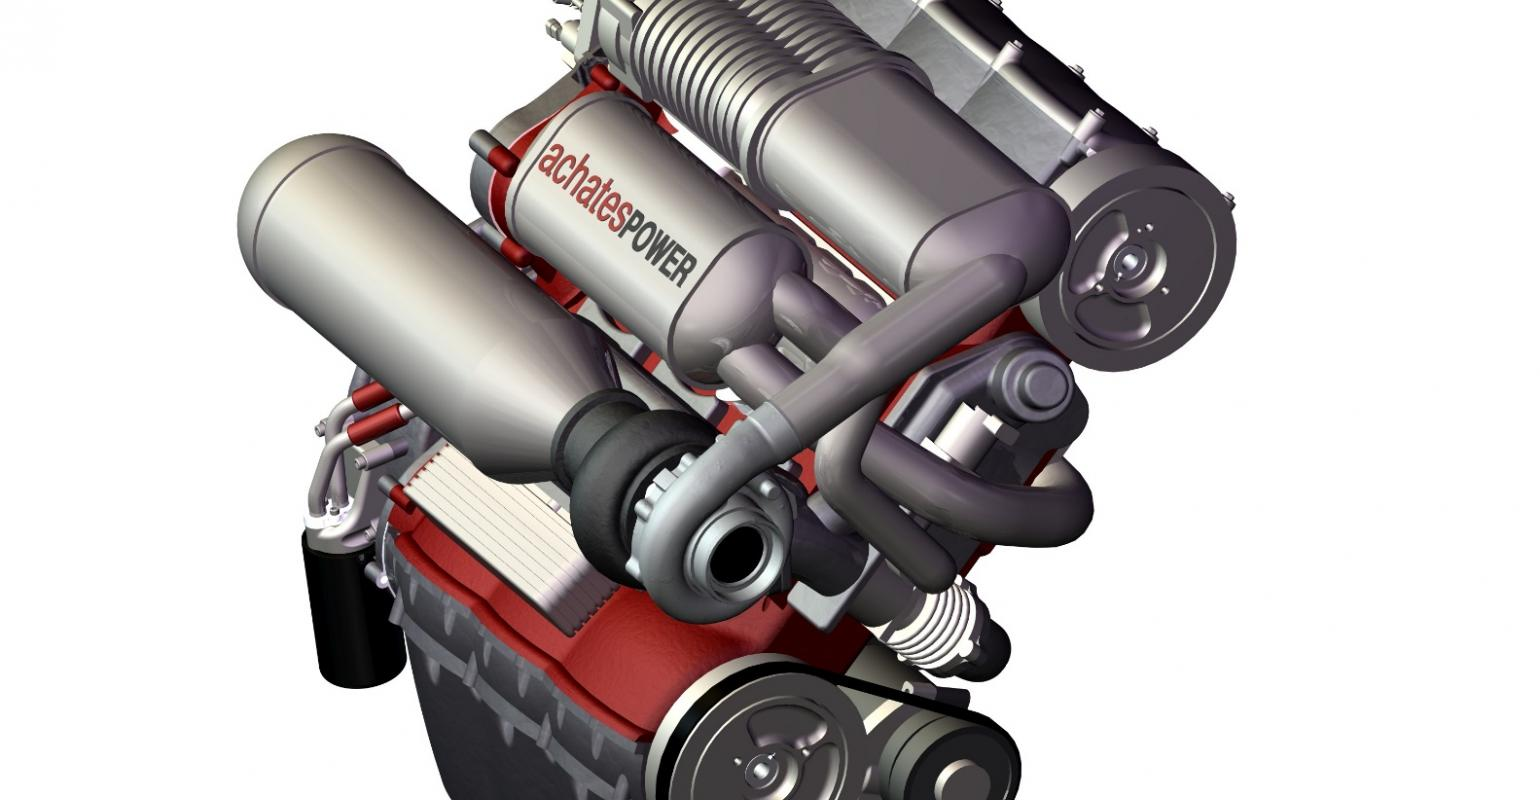 Supercharged Achates 2stroke Features Two Horizontally Opposed Pistons Per Cylinder And Crankshafts